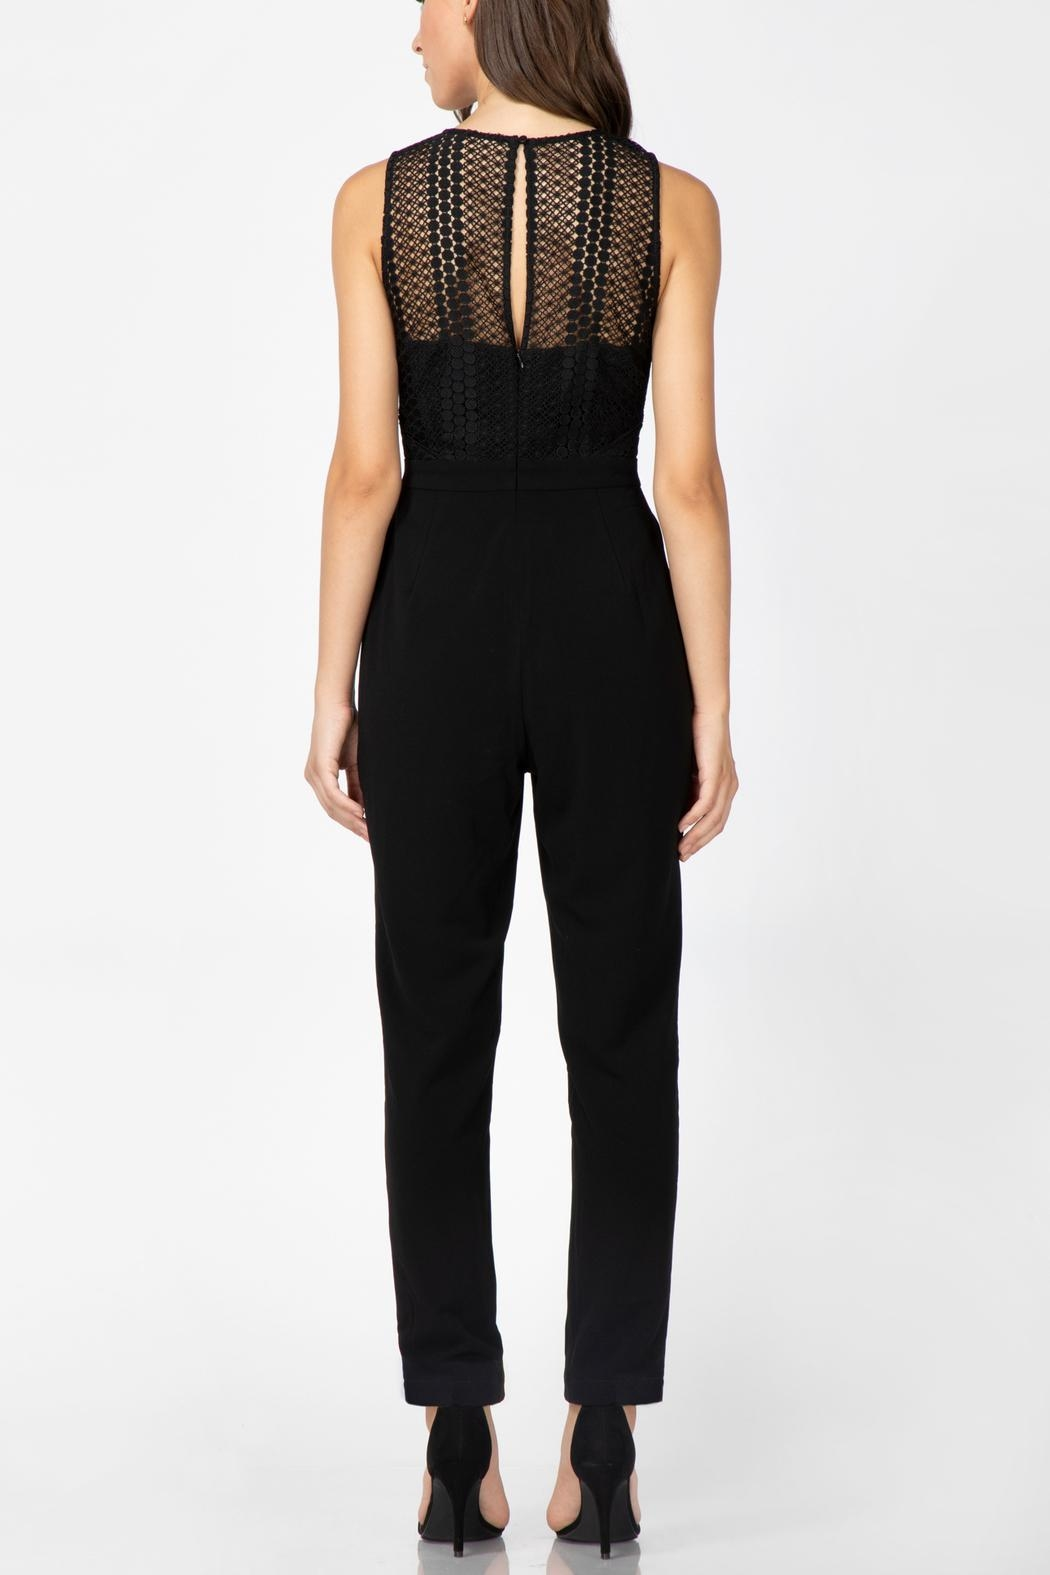 Adelyn Rae Londyn Lace Jumpsuit - Front Full Image